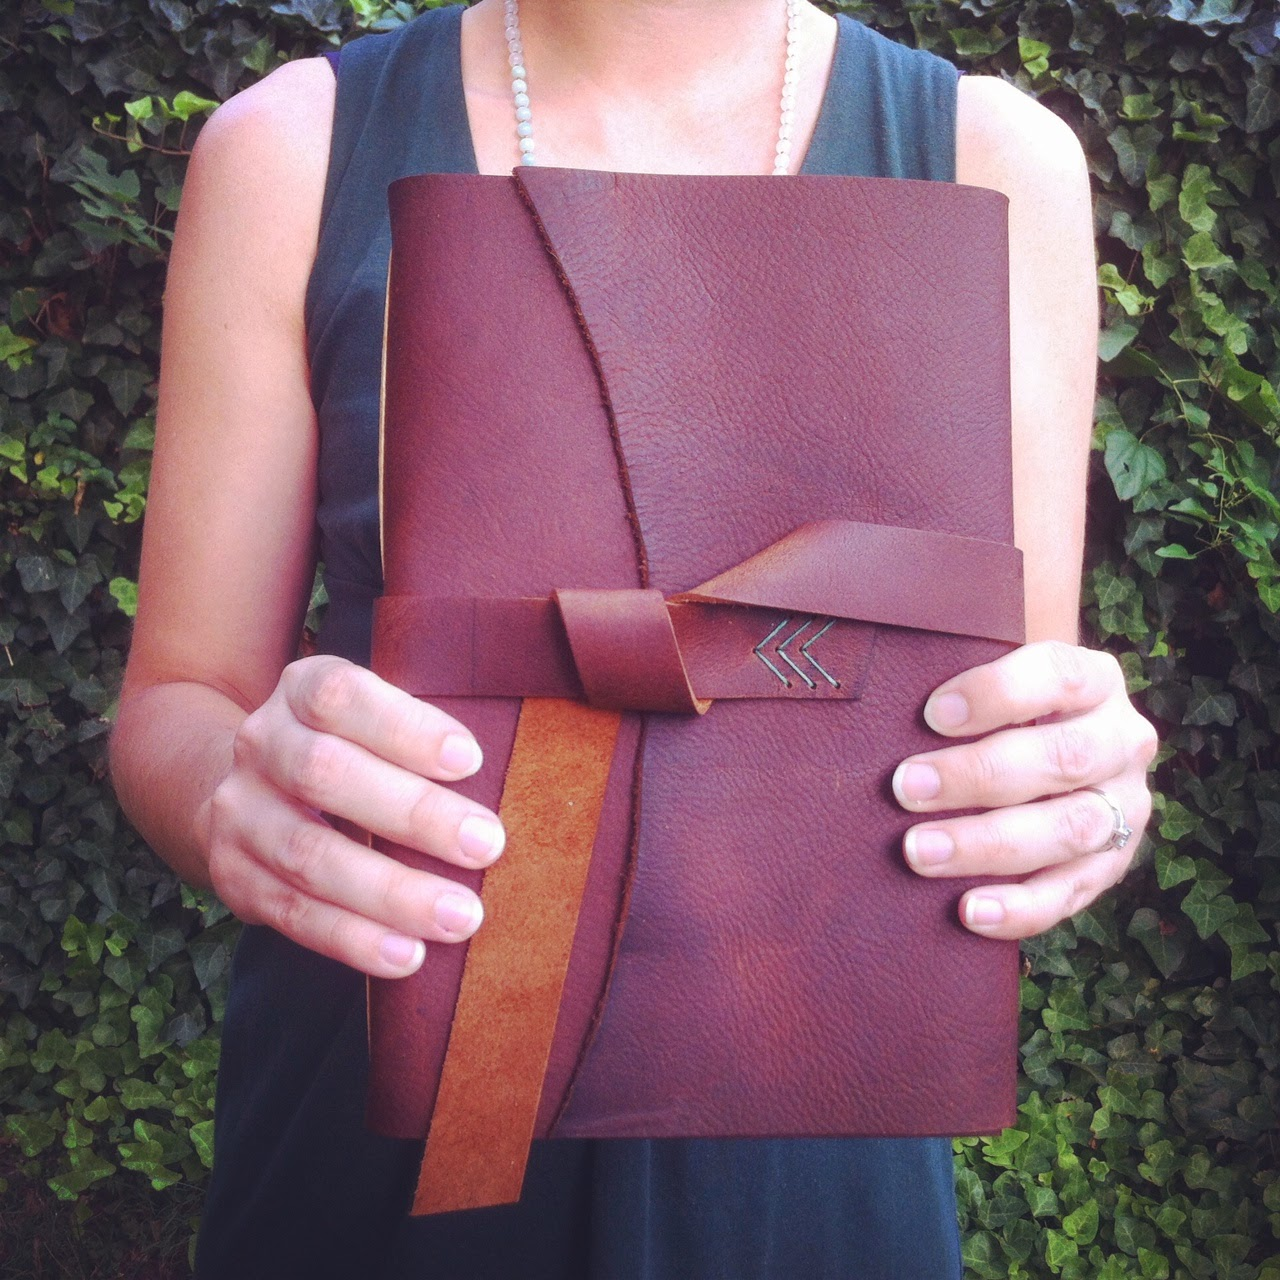 Handbound leather journal by Katie Gonzalez